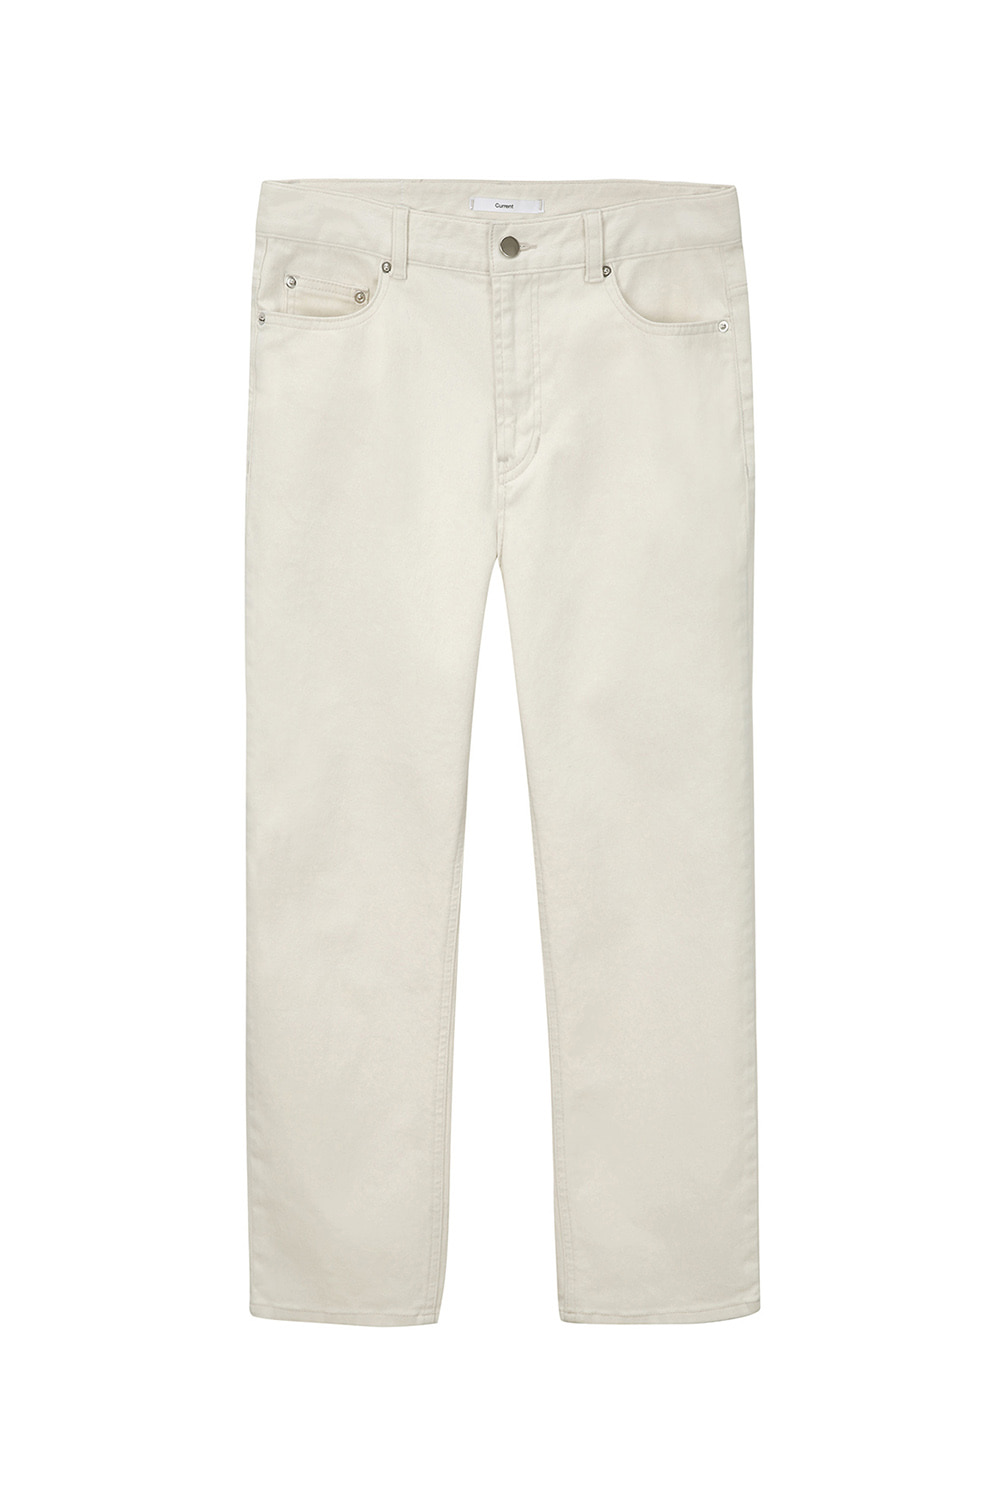 Crop Jeans Men [Cream]